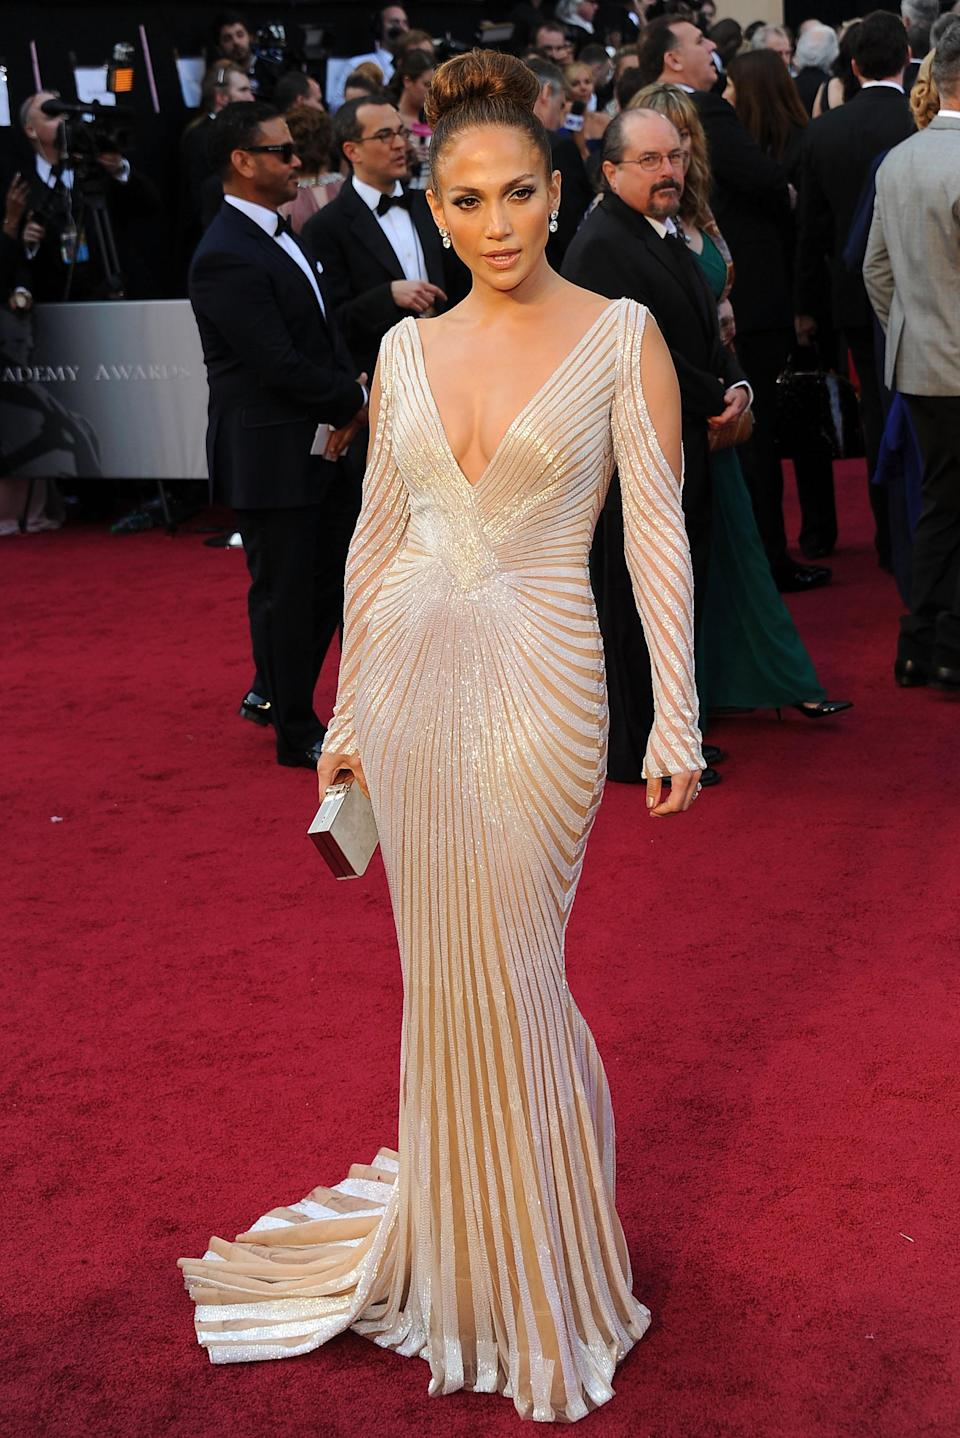 <p>Ah, 2012, the year of the J.Lo and Enrique Igleasias tour. With her fitness at an all-time high and sporting a peak touring bod, J.Lo stuns in this Grecian-inspired dress with a deep neckline and curve-hugging silhouette. [Photo: Getty] </p>